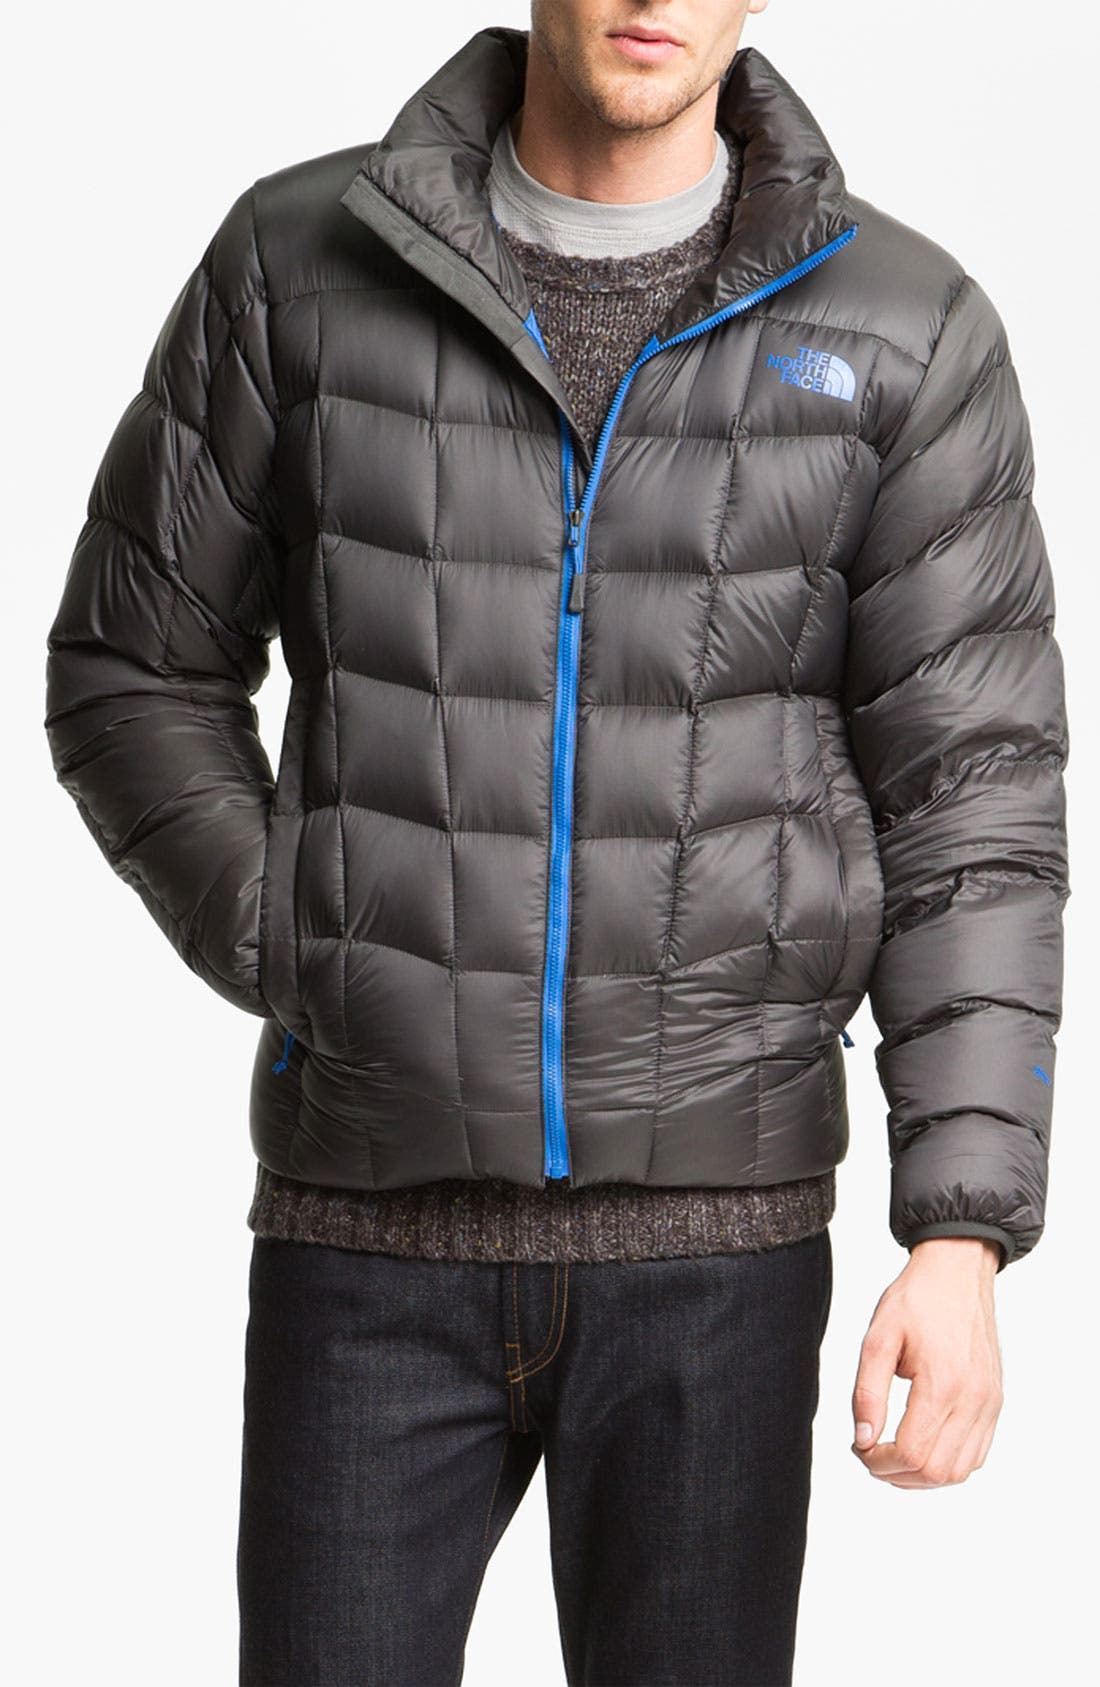 Alternate Image 1 Selected - The North Face 'Down Under' Jacket